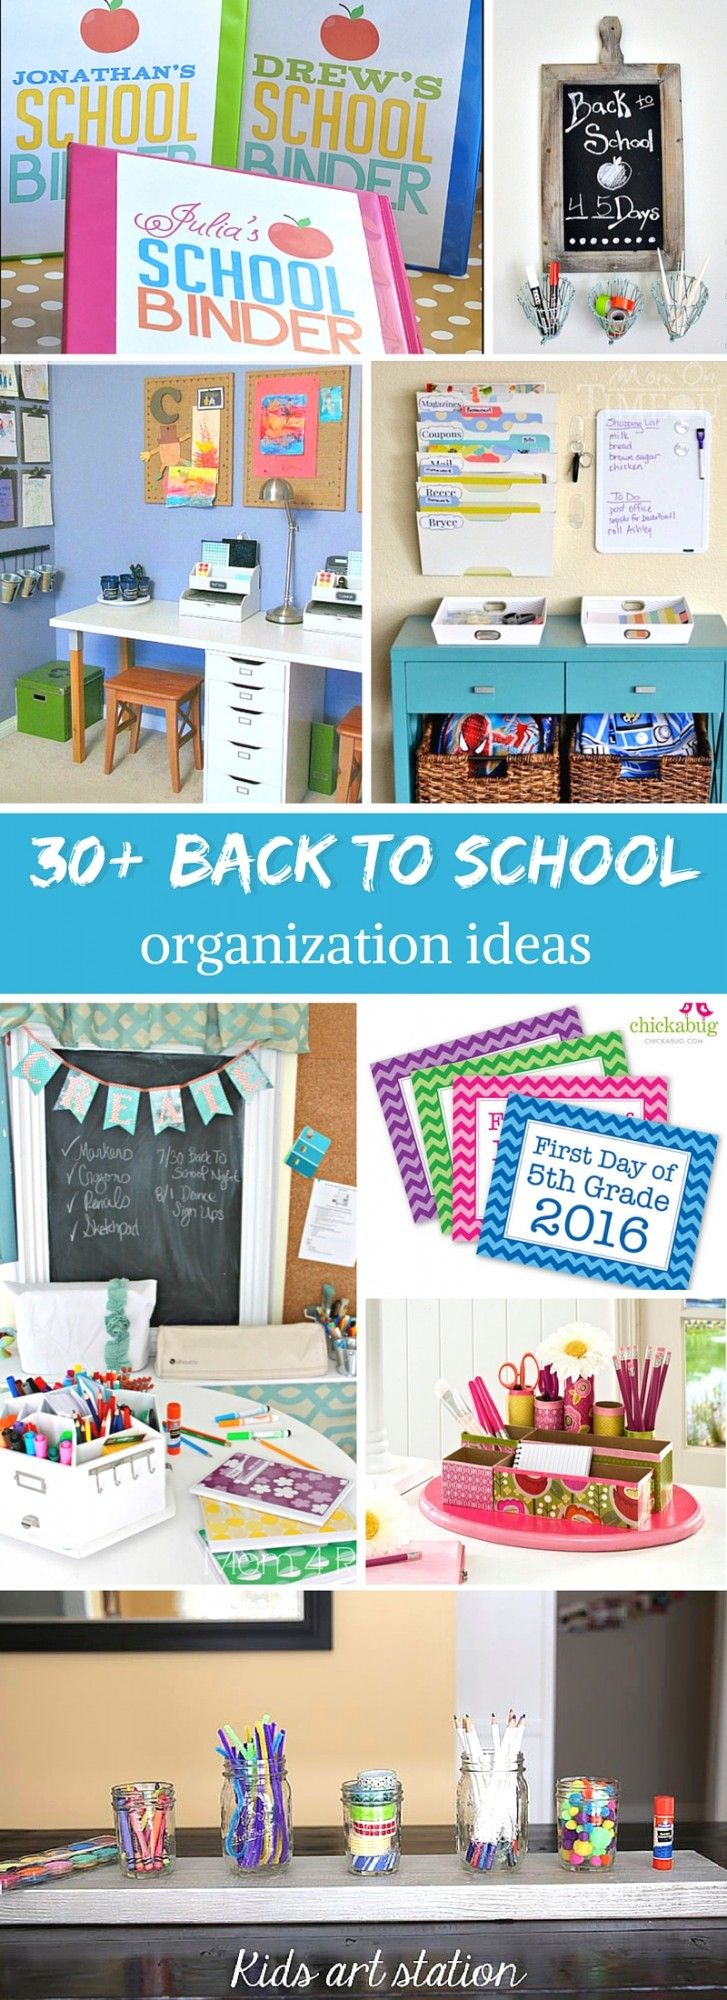 Craftaholics Anonymous® | Back to School Organization Tips